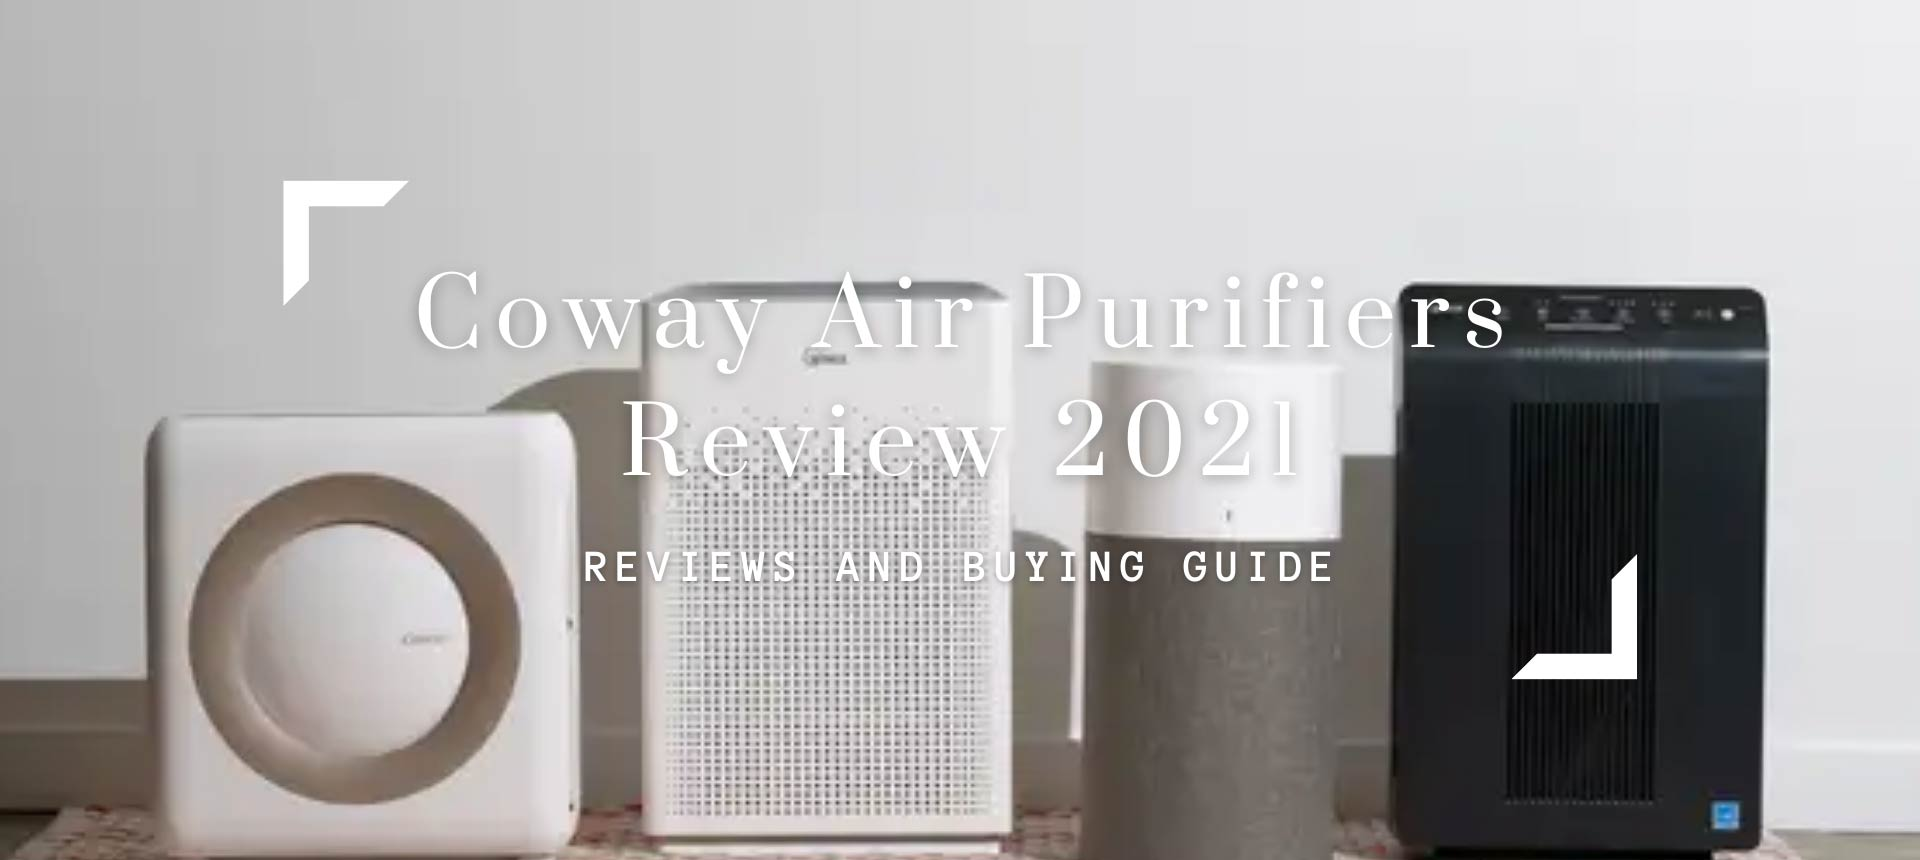 Coway Air Purifiers Review 2021-Top Picks, Pros & Cons